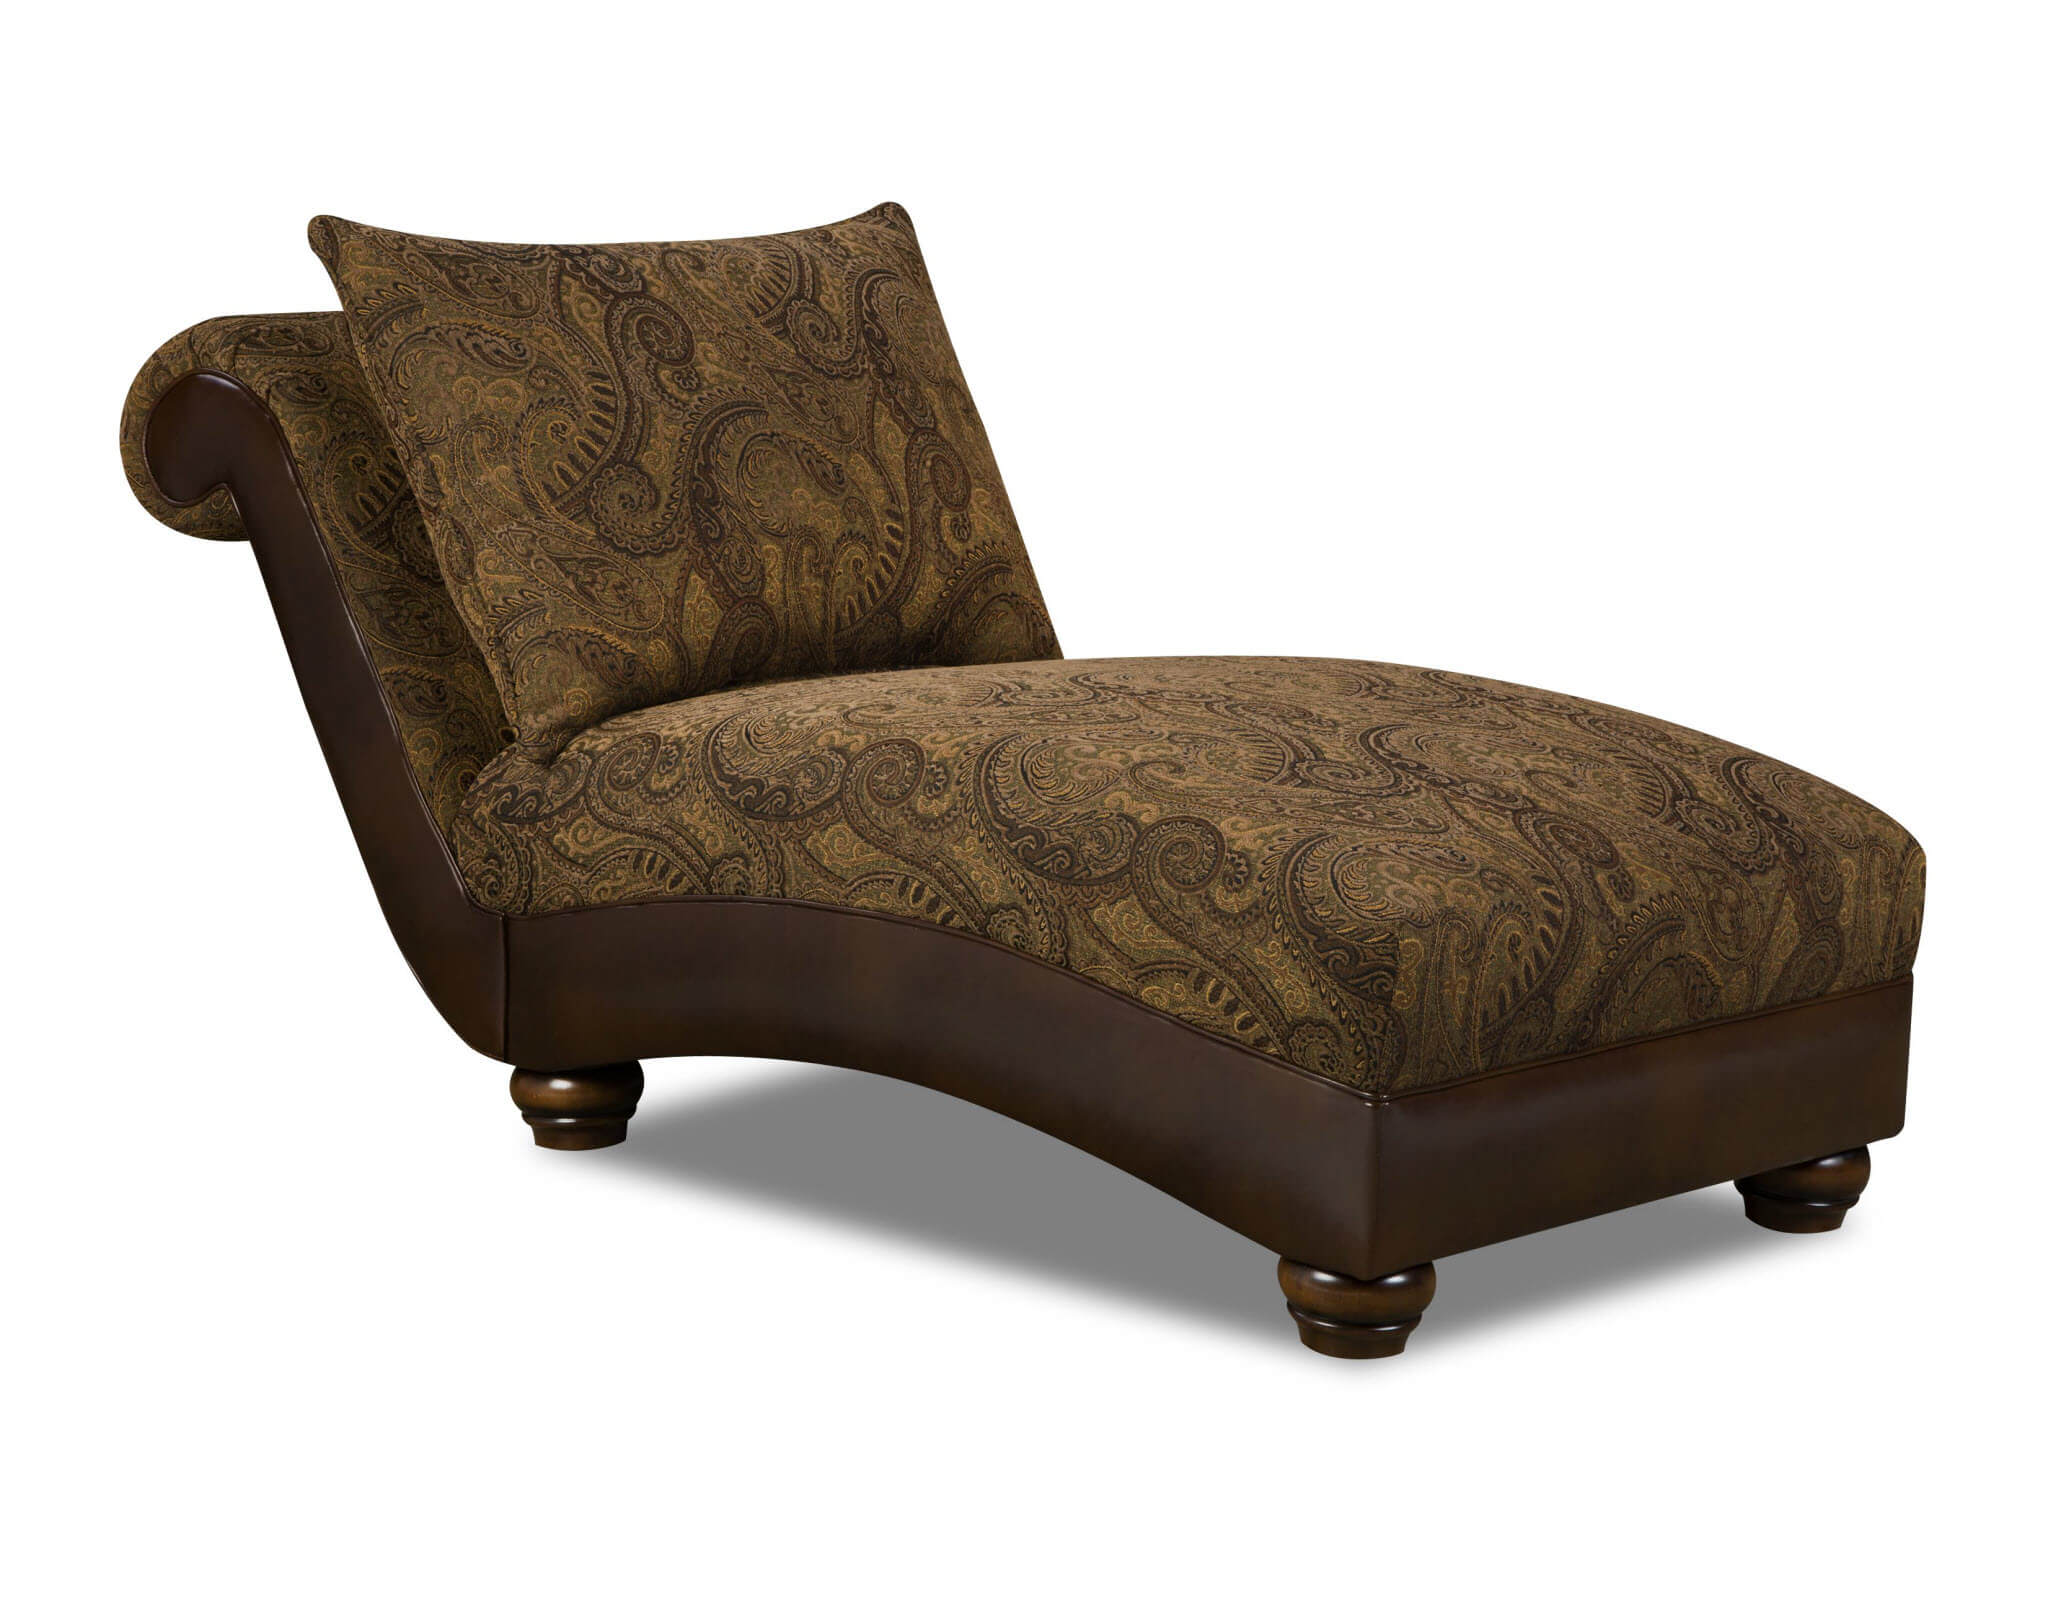 Super 8104 Simmon Zephyr Vintage Aspen Chaise Discontinued Creativecarmelina Interior Chair Design Creativecarmelinacom